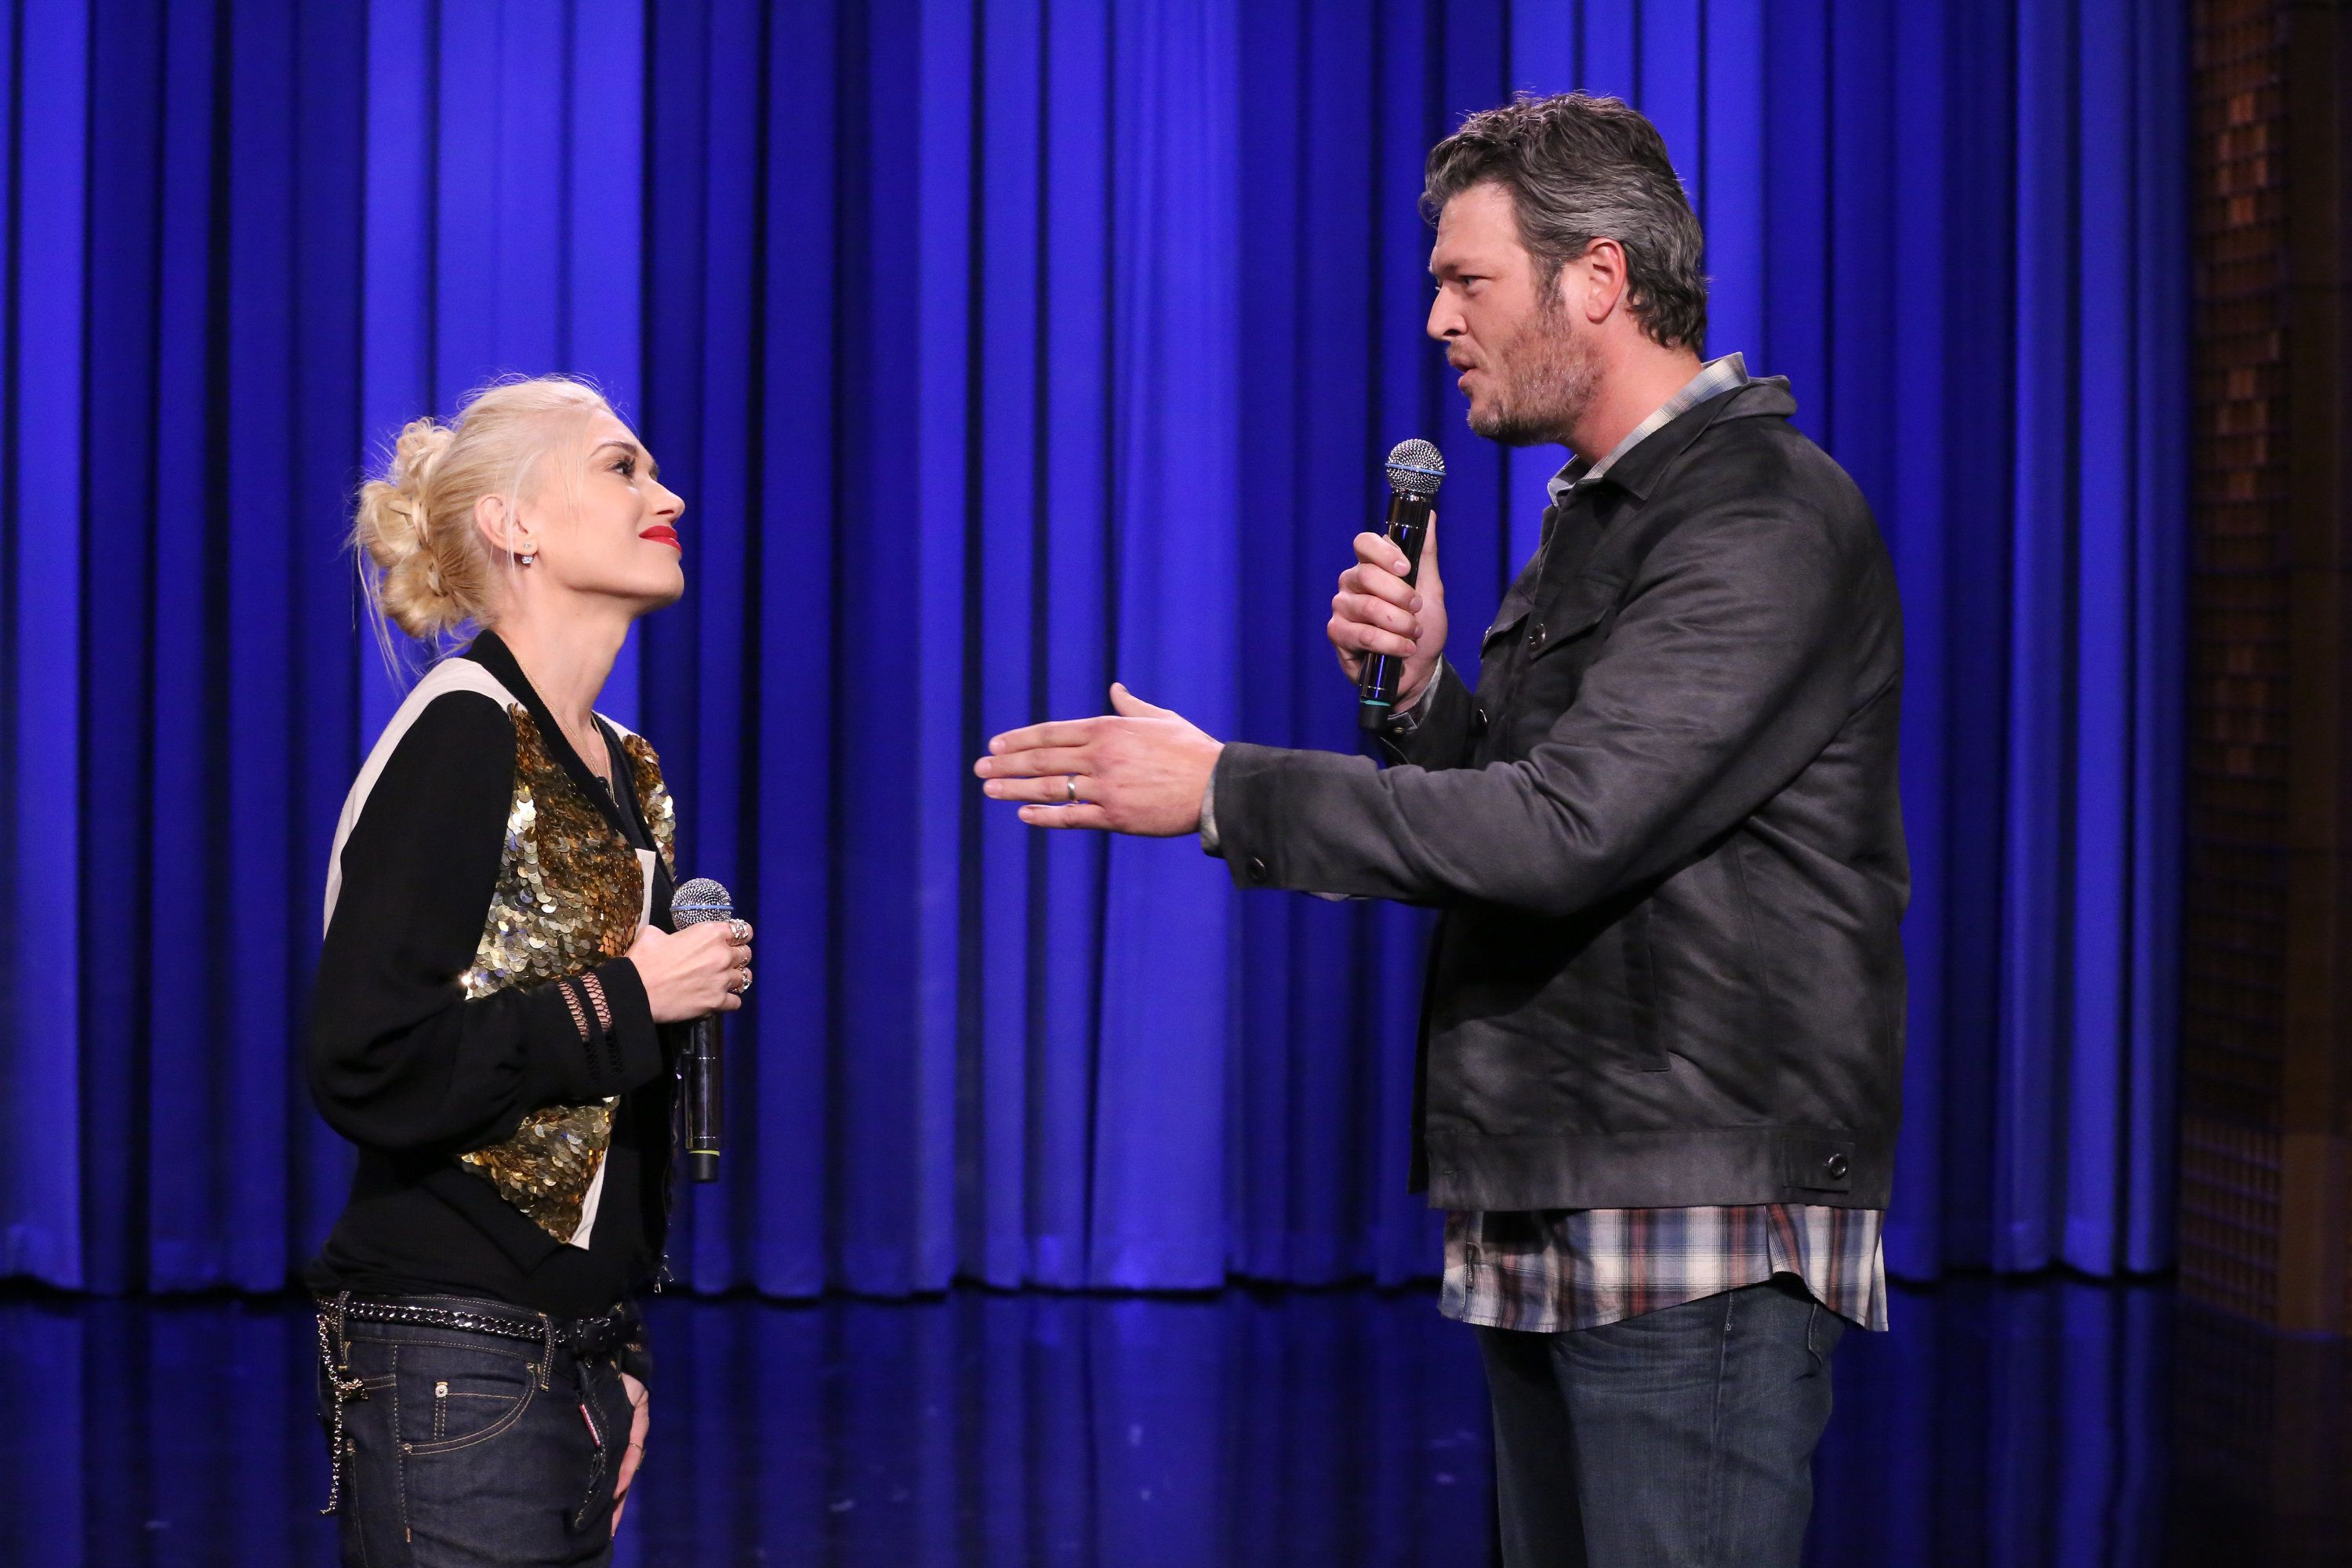 THE TONIGHT SHOW STARRING JIMMY FALLON -- Episode 0126 -- Pictured: (l-r) Singer Gwen Stefani and singer Blake Shelton during a lip synch battle on September 17, 2014 -- (Photo by: Douglas Gorenstein/NBC/NBCU Photo Bank via Getty Images)